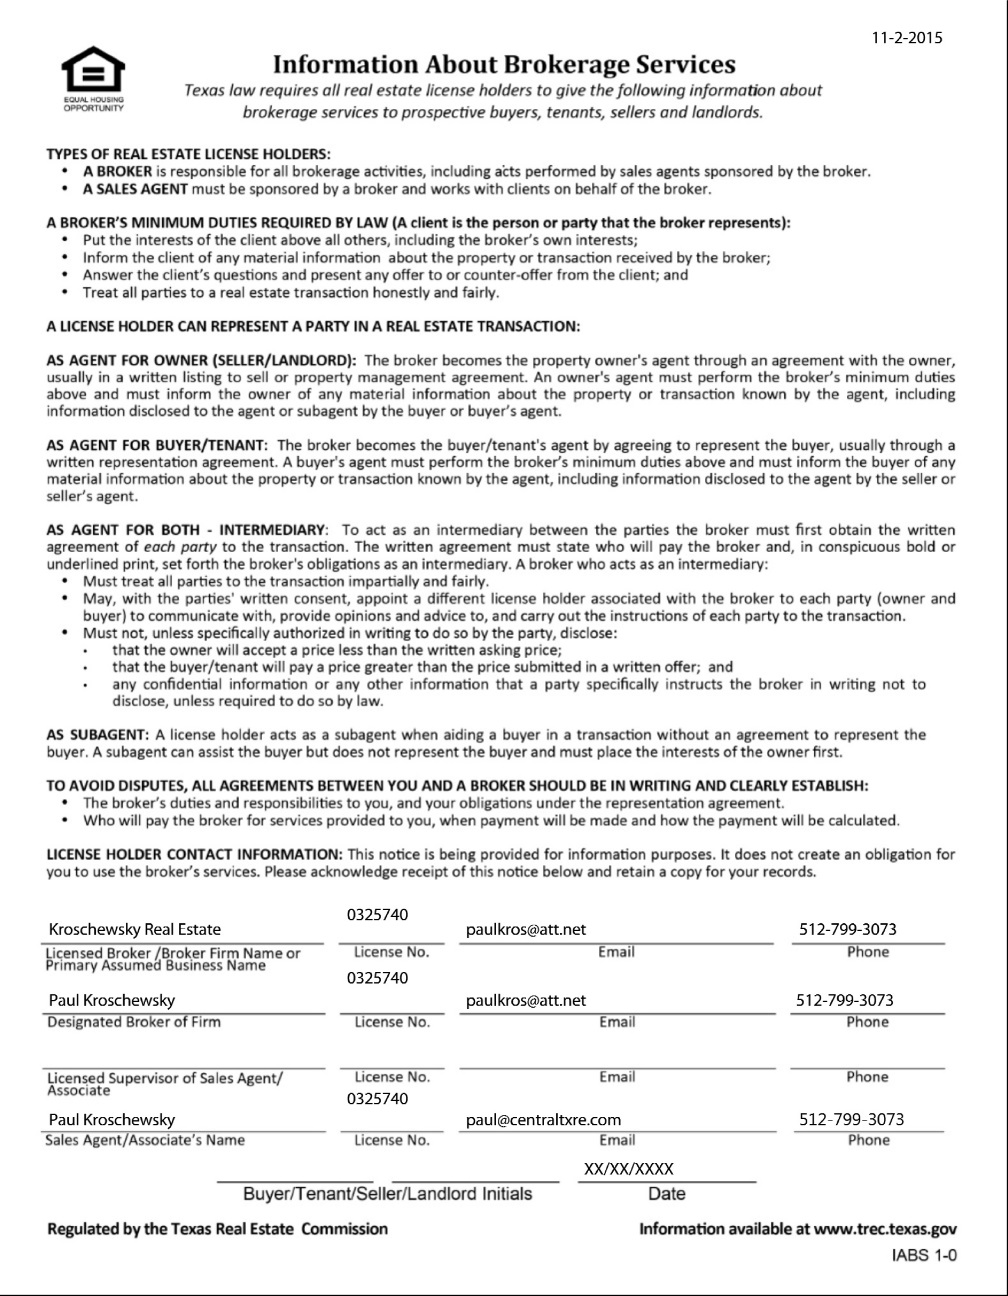 Texas Real Estate Commission (TREC) Information About Brokerage Services Form-40